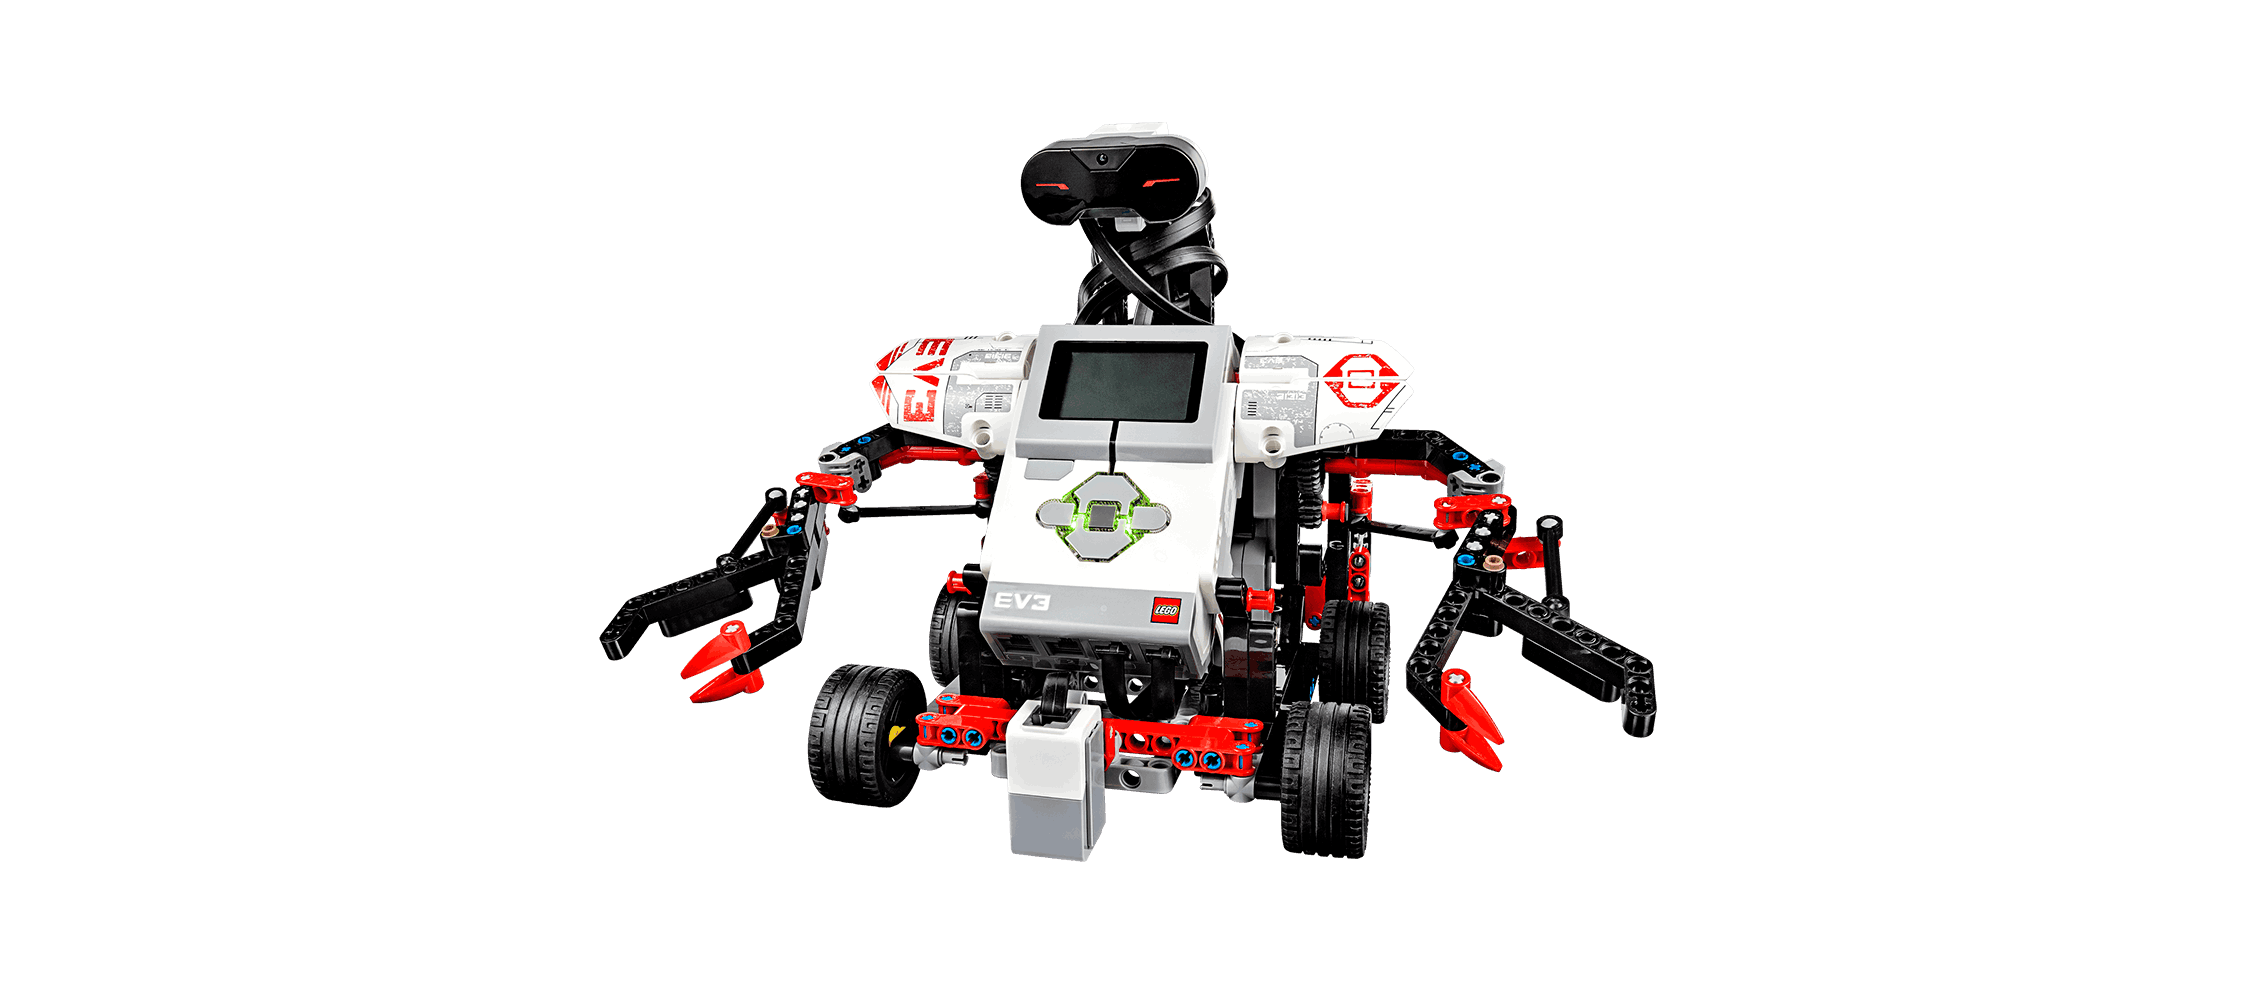 vector black and white library transparent robot ev3 #117268623